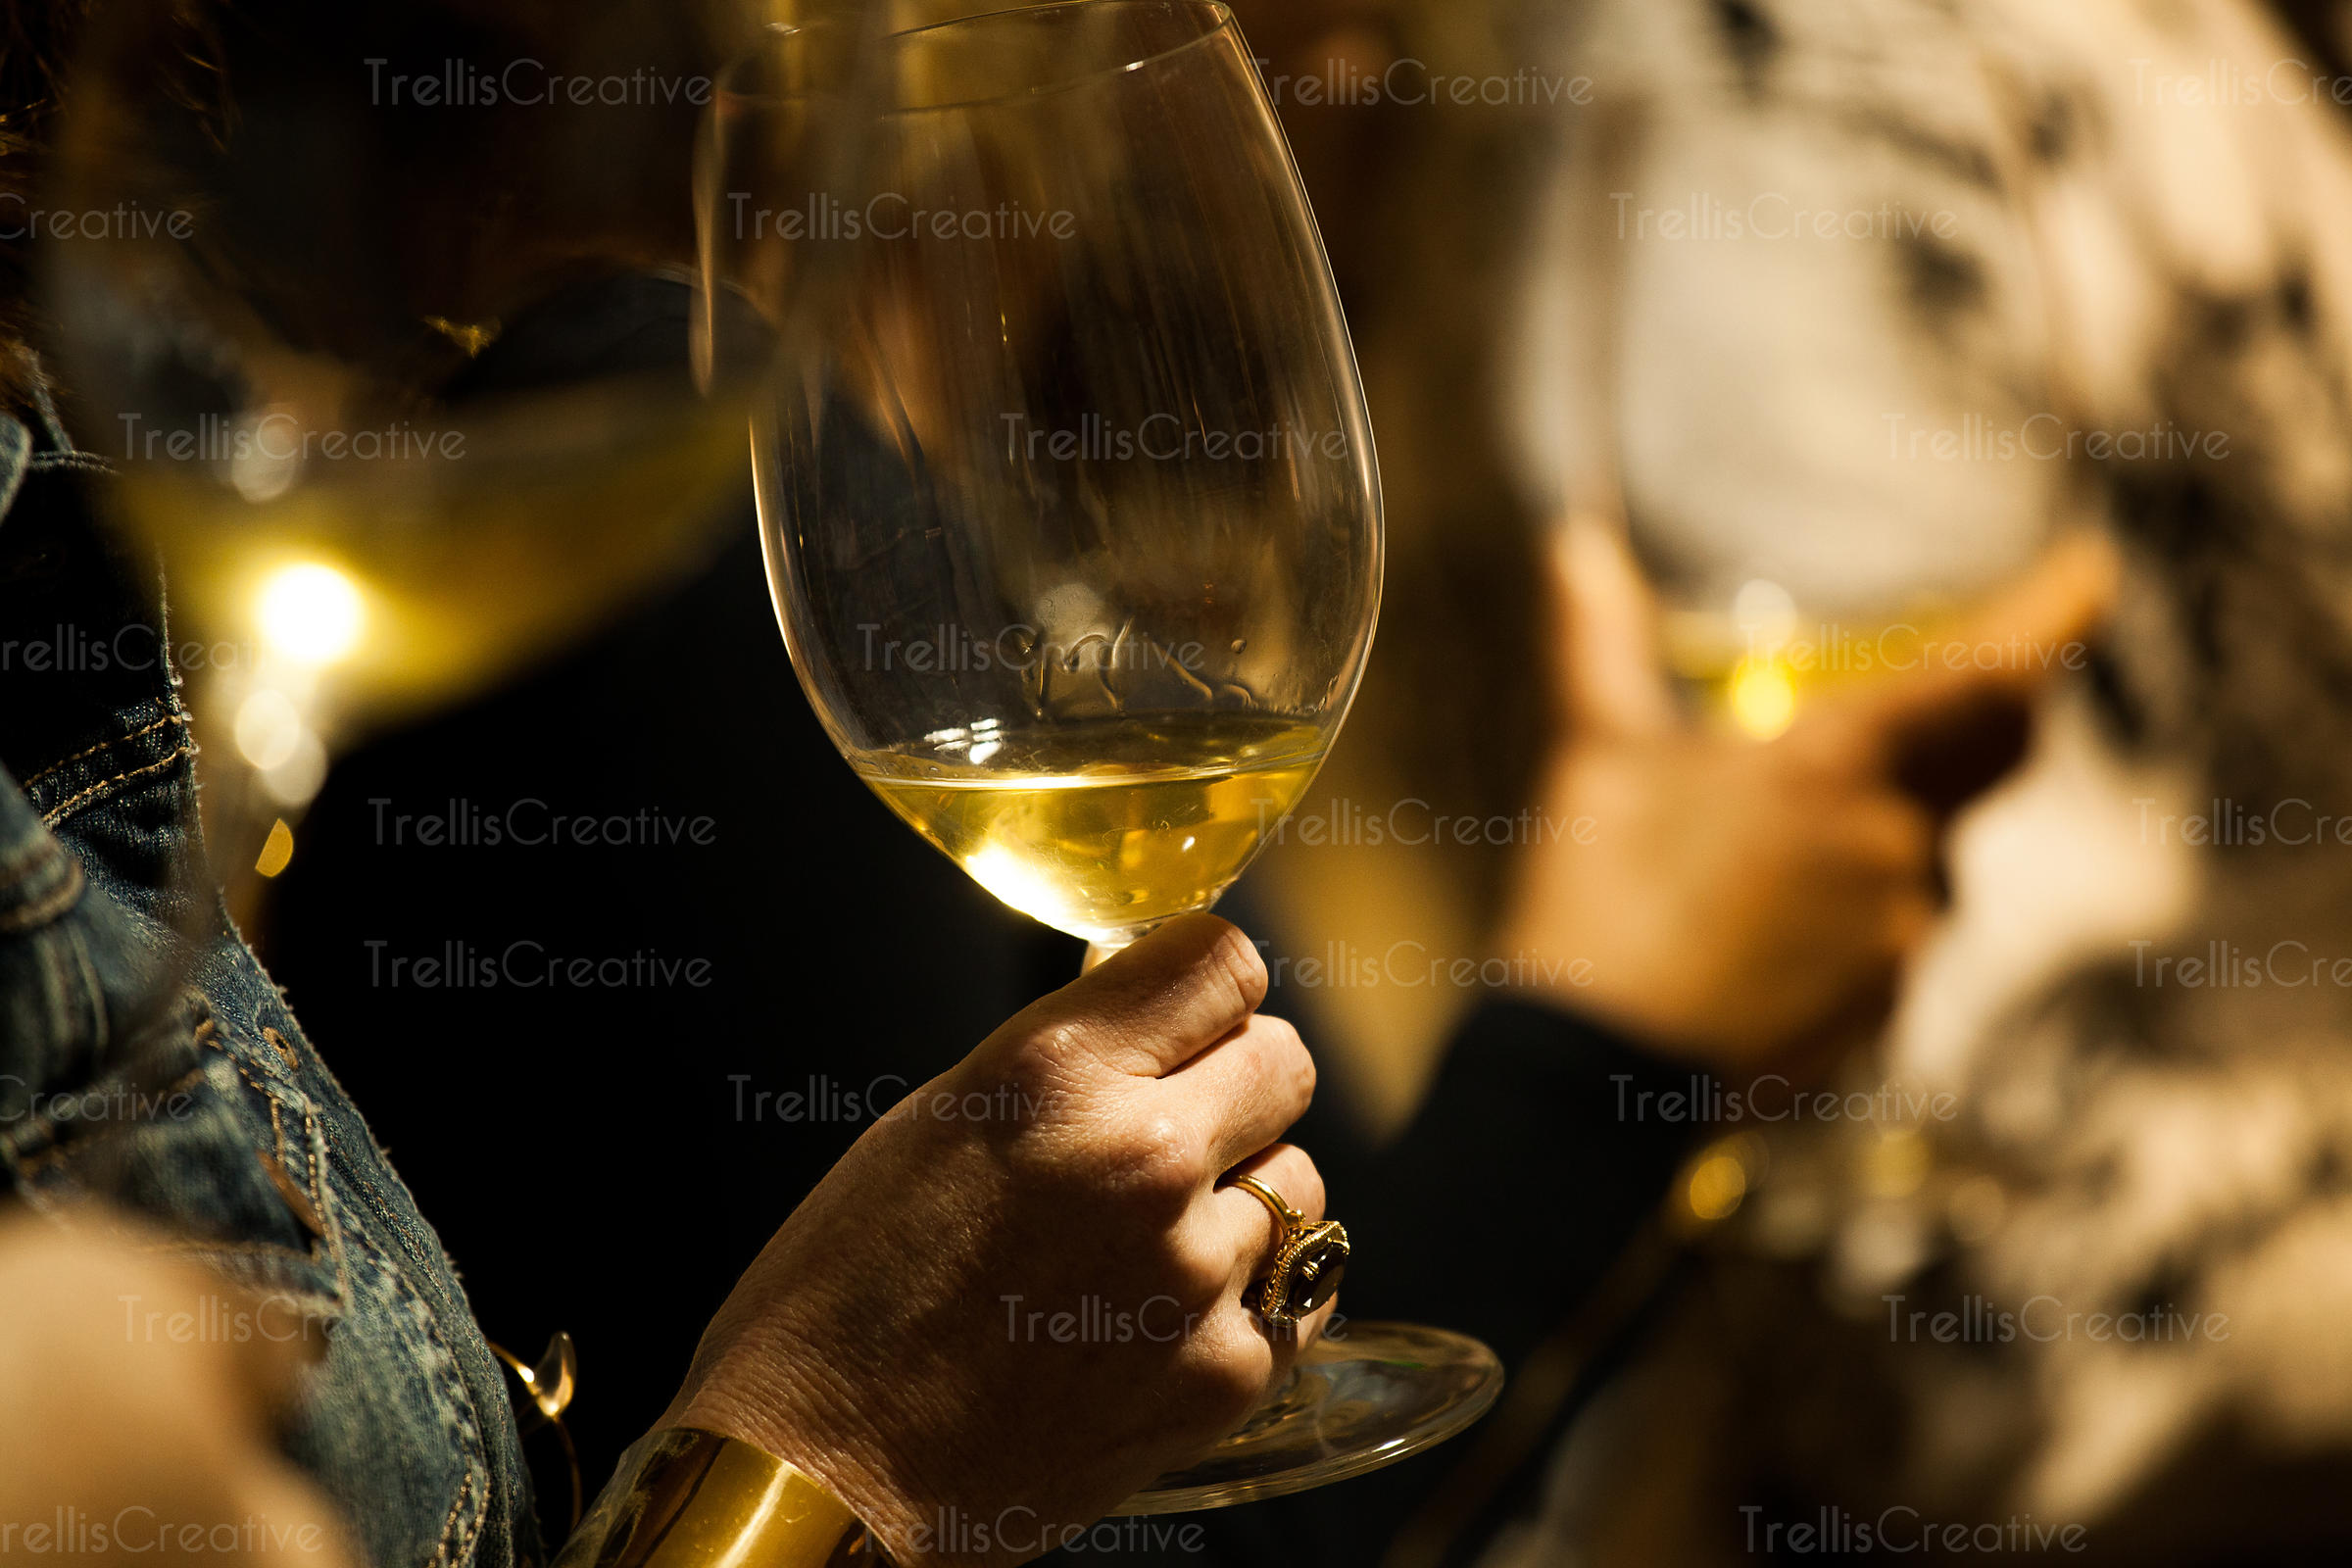 Person drinking white wine at an event